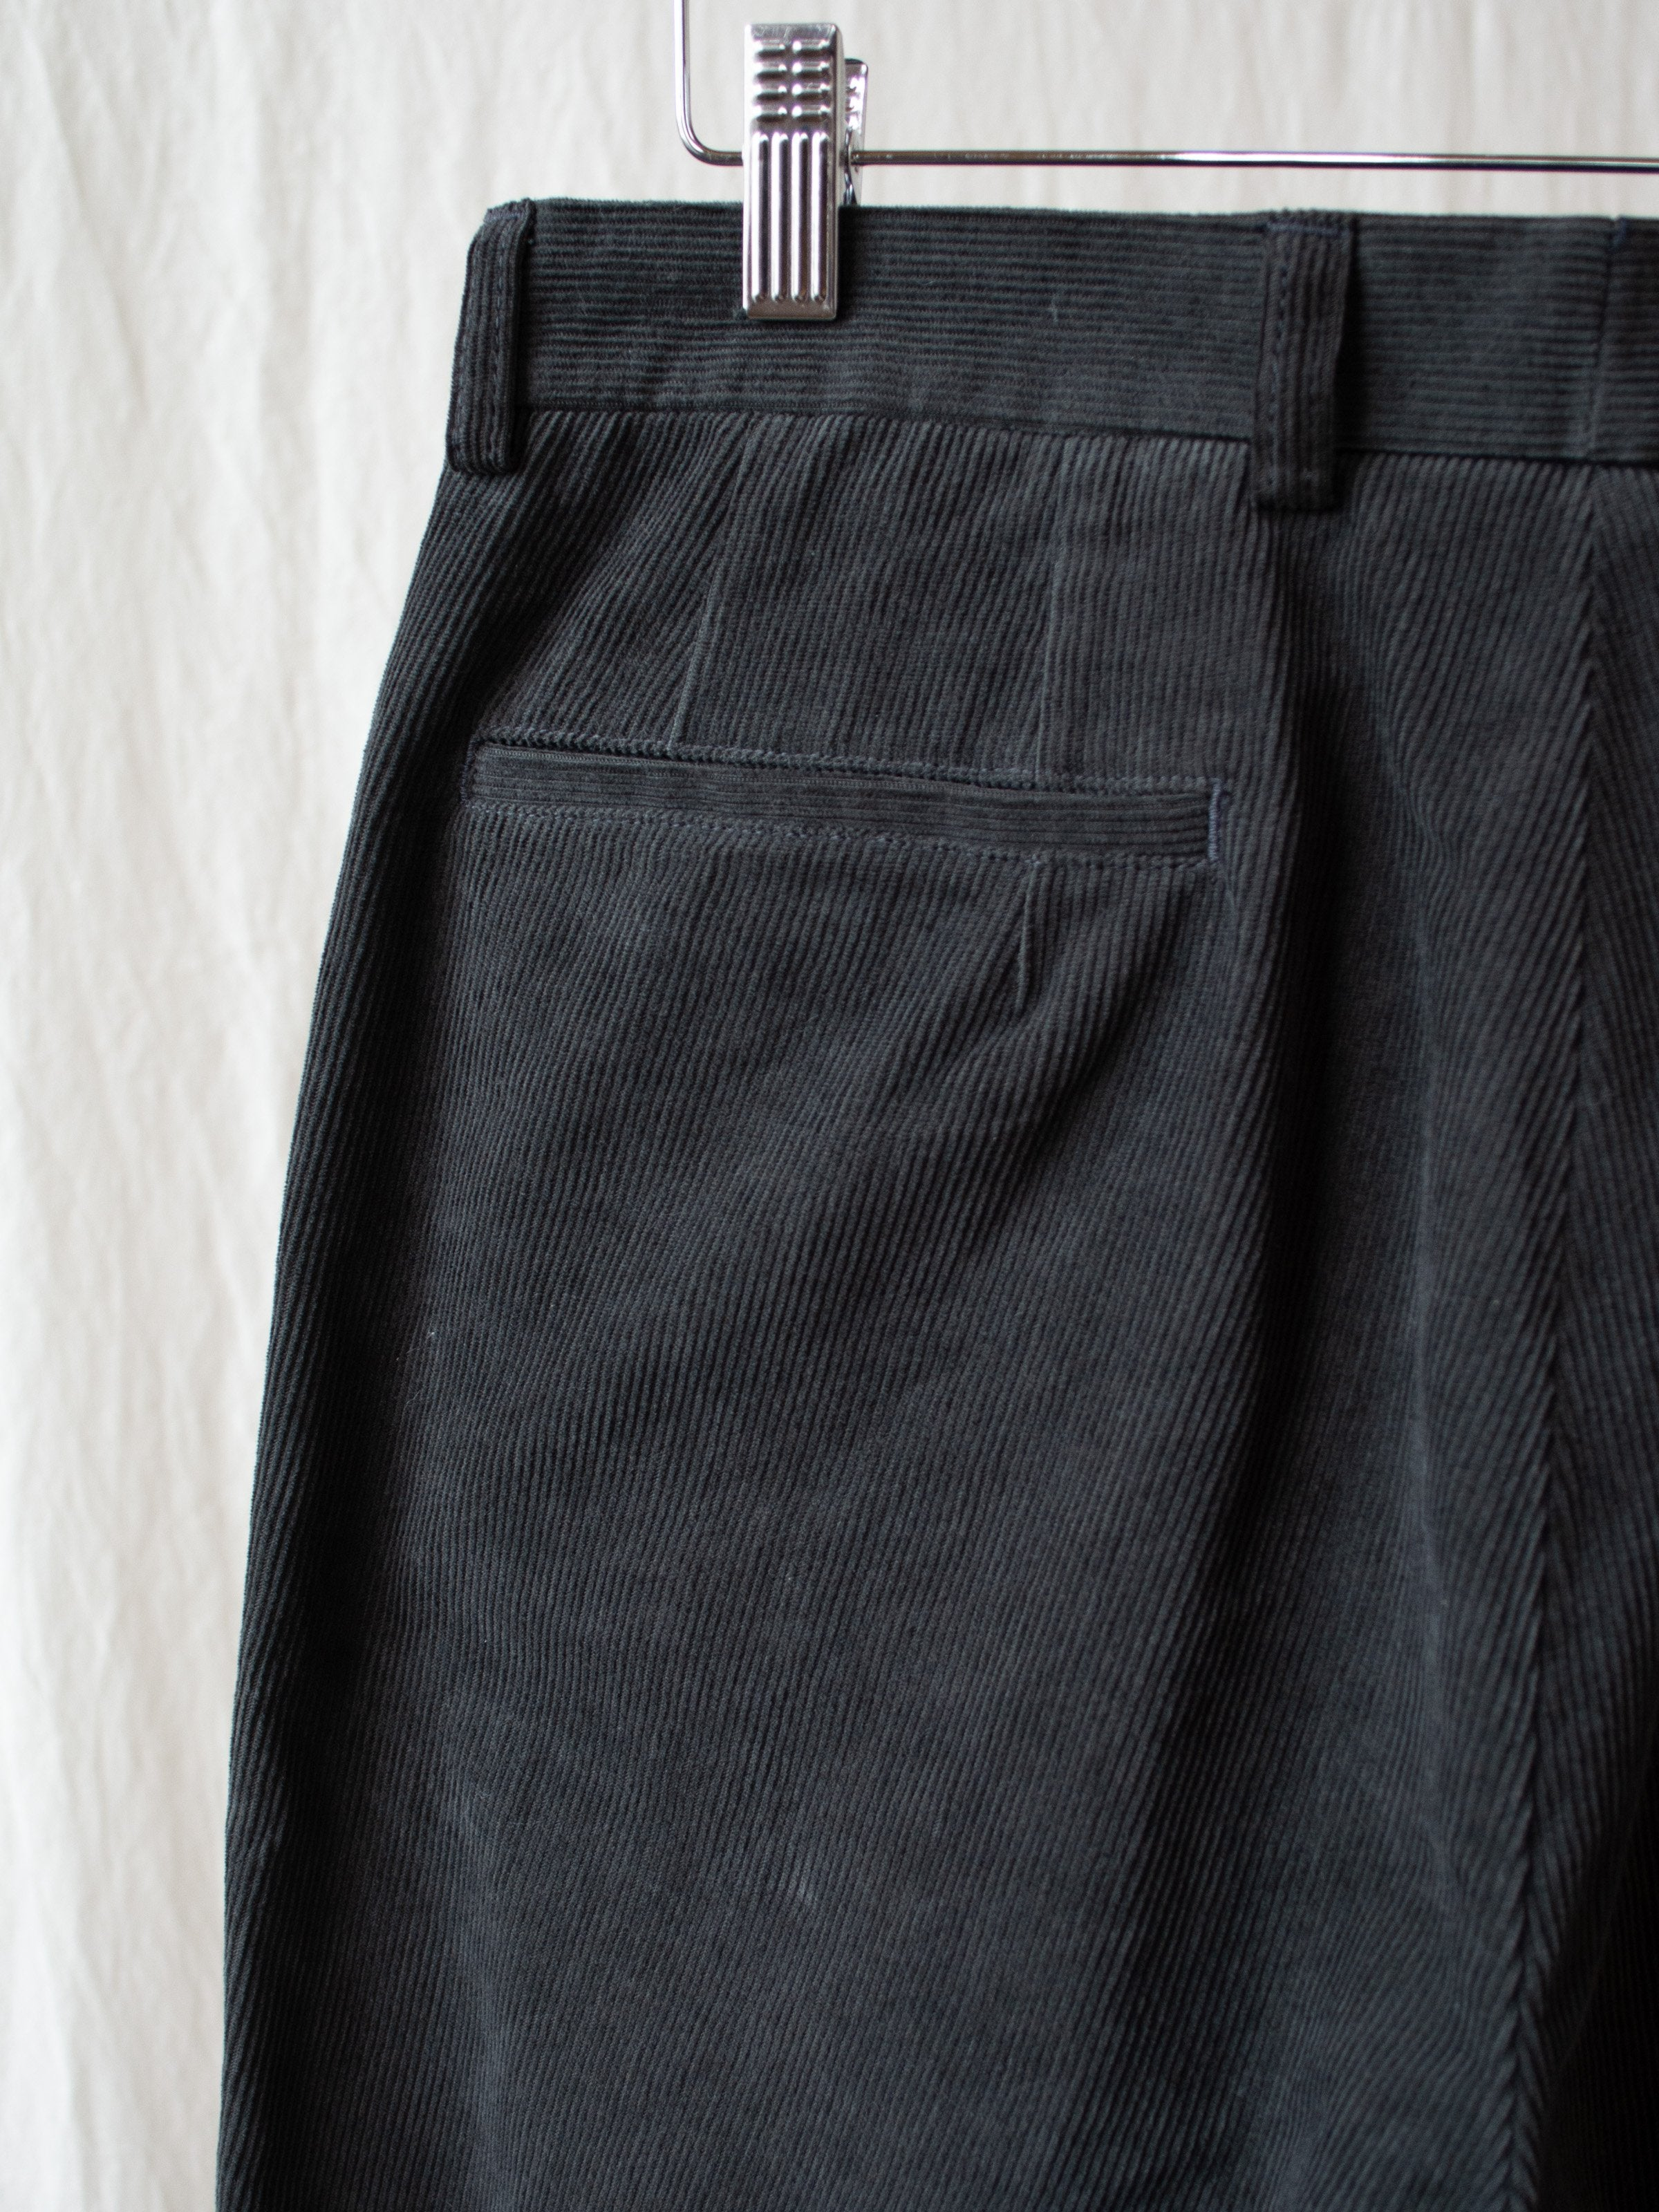 Namu Shop - Kaptain Sunshine L-Pocket Corduroy Trousers - Charcoal